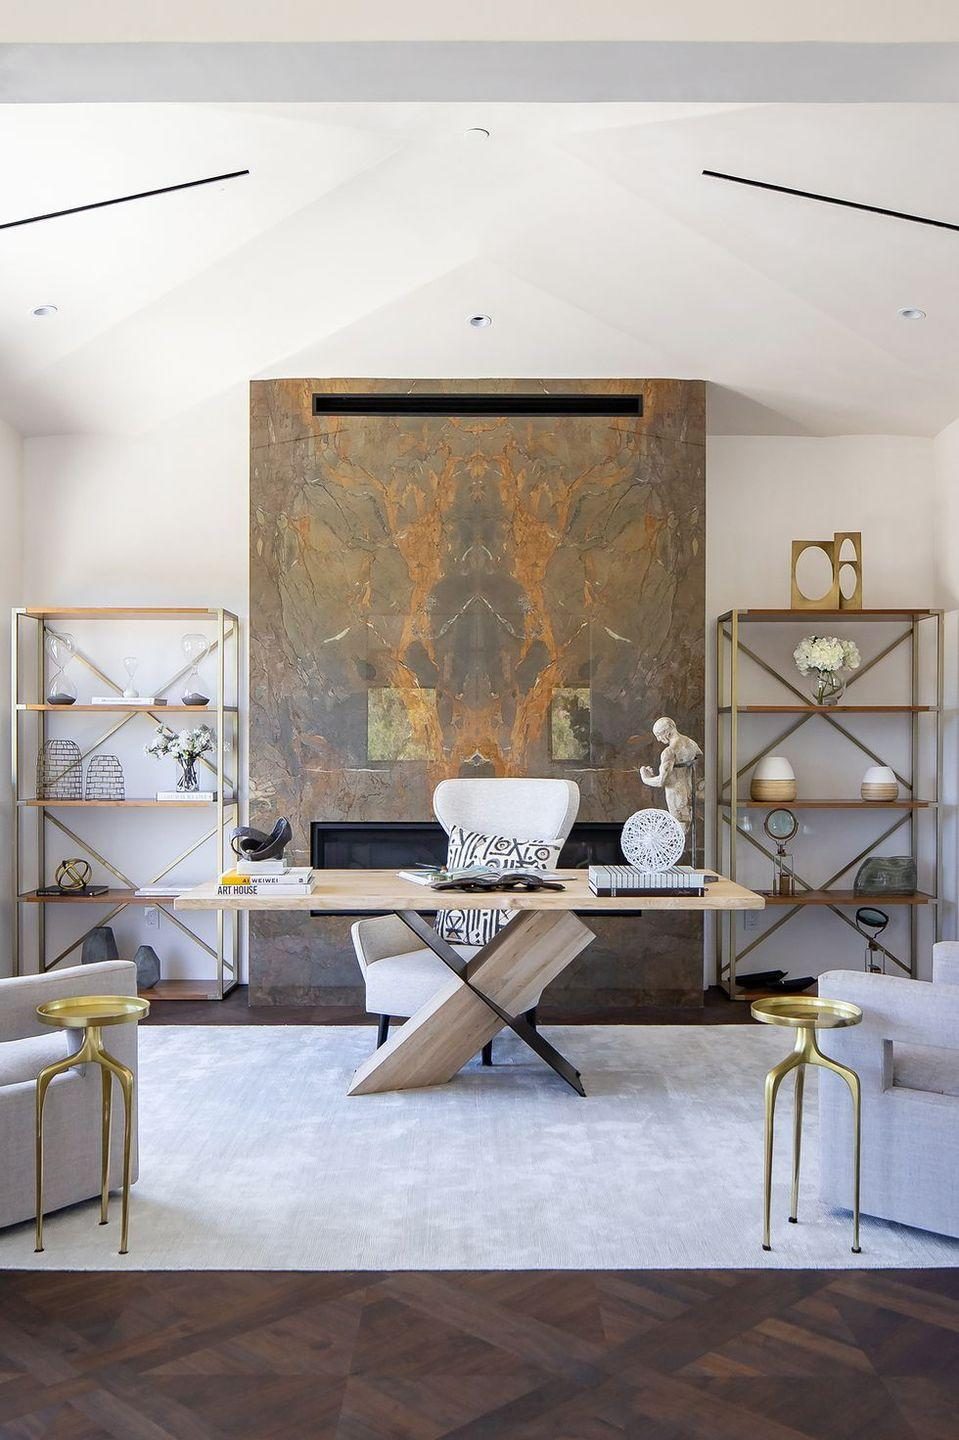 """<p>Warm and open up an airy home office with a fireplace that features an earth-toned facade, like this one in a large room <a href=""""https://www.housebeautiful.com/design-inspiration/house-tours/a33930929/breegan-jane-unica-tour/"""" rel=""""nofollow noopener"""" target=""""_blank"""" data-ylk=""""slk:designed"""" class=""""link rapid-noclick-resp"""">designed</a> by <a href=""""https://breeganjane.com/"""" rel=""""nofollow noopener"""" target=""""_blank"""" data-ylk=""""slk:Breegan Jane."""" class=""""link rapid-noclick-resp"""">Breegan Jane.</a> The marble introduces a sophisticated, formal style to the more casual elements, and it also helps to bring the scale of the ceilings down to a more intimate, human scale.</p>"""